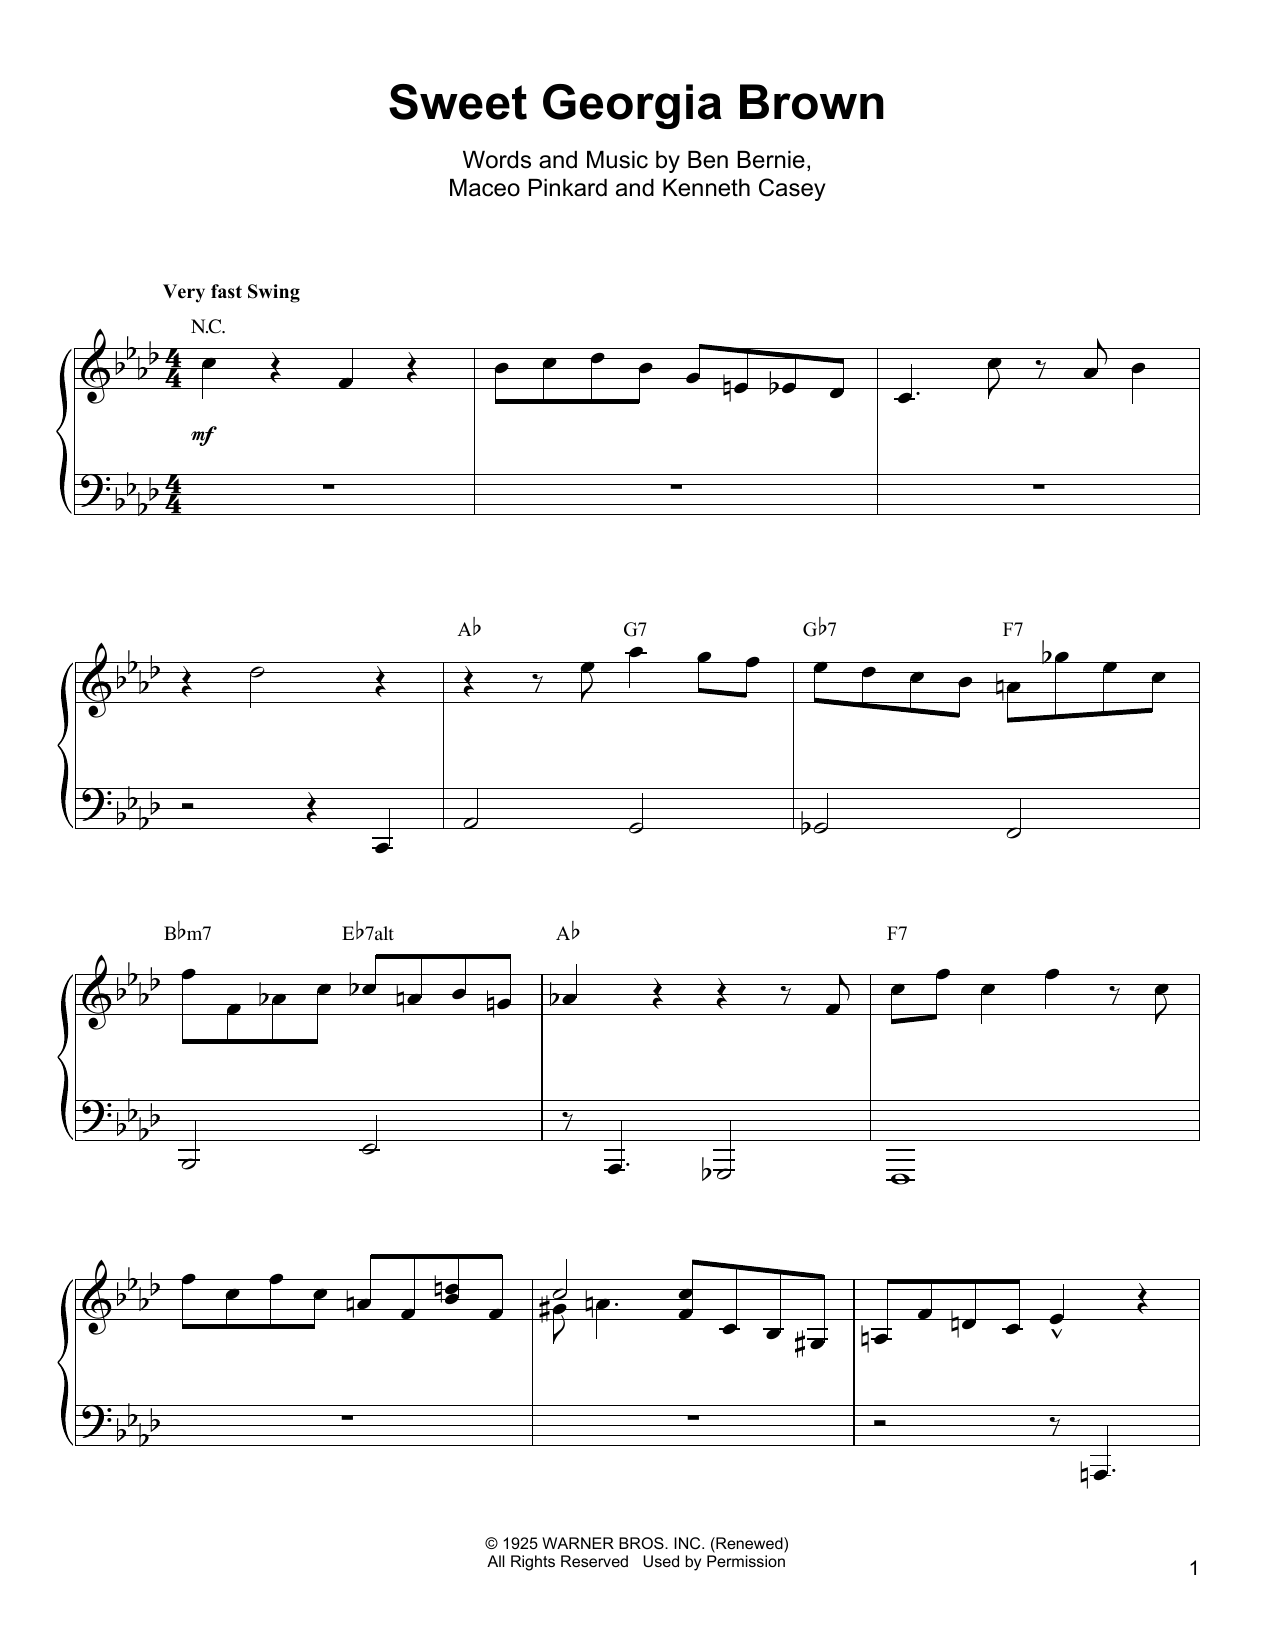 Oscar Peterson 'Sweet Georgia Brown' Sheet Music Notes, Chords | Download  Printable Piano Transcription - SKU: 199139